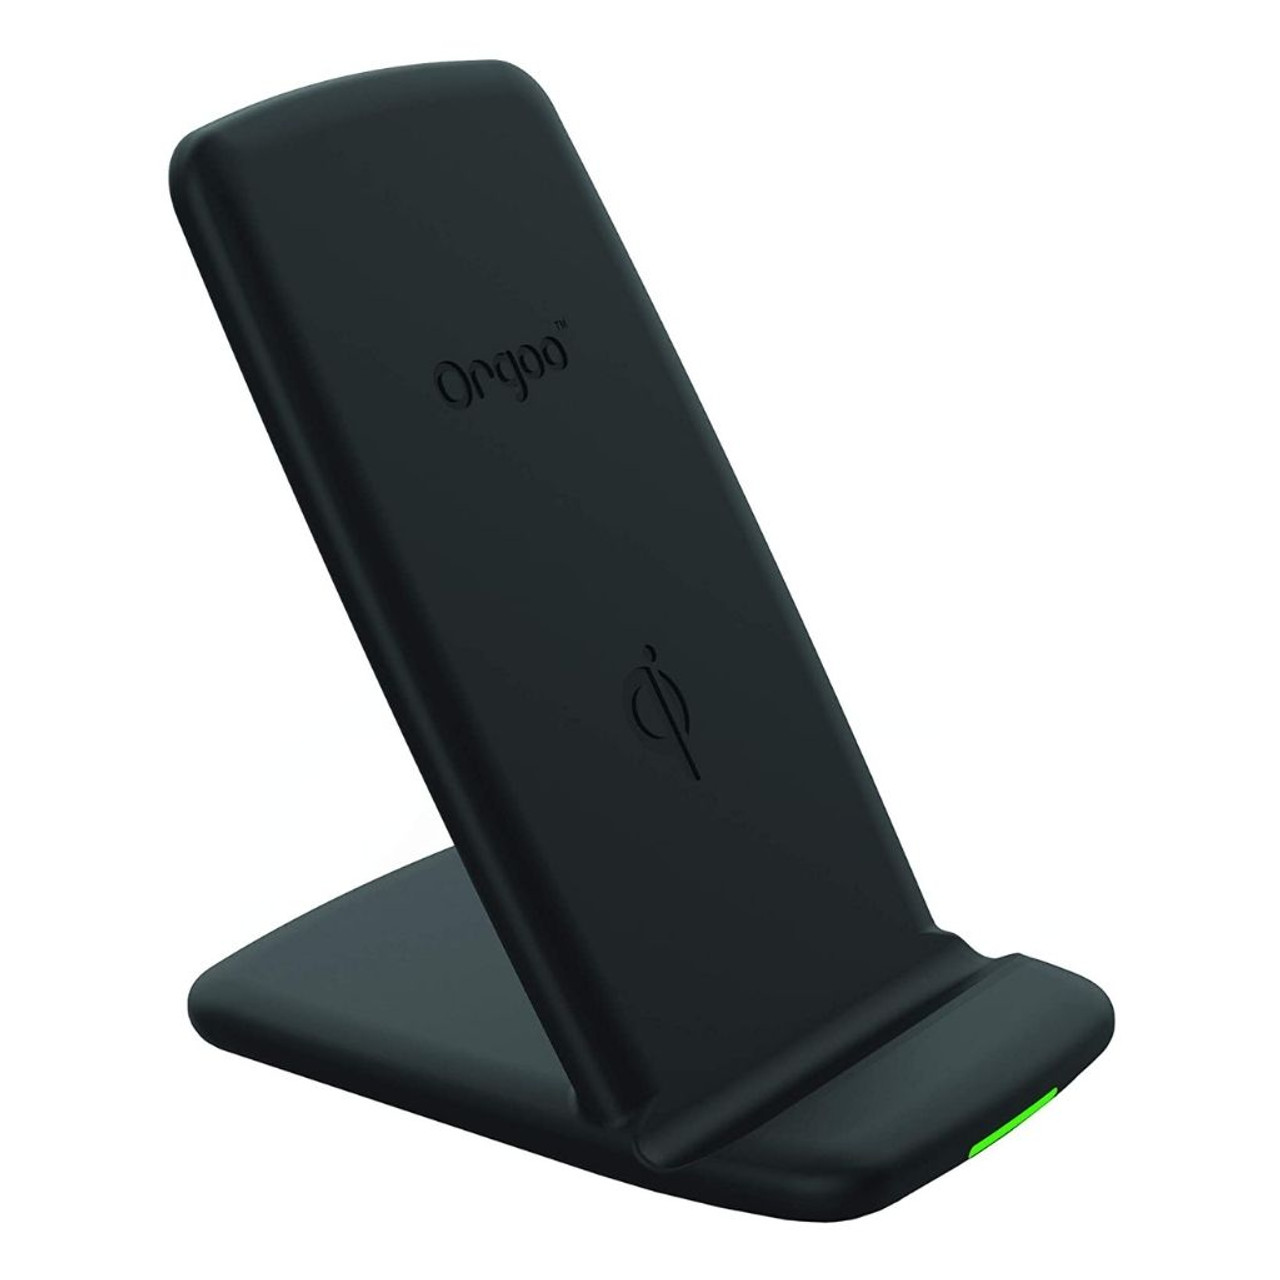 Orgoo Qi-Certified Fast Wireless Charger & Smartphone Stand $11.99 (60% OFF)